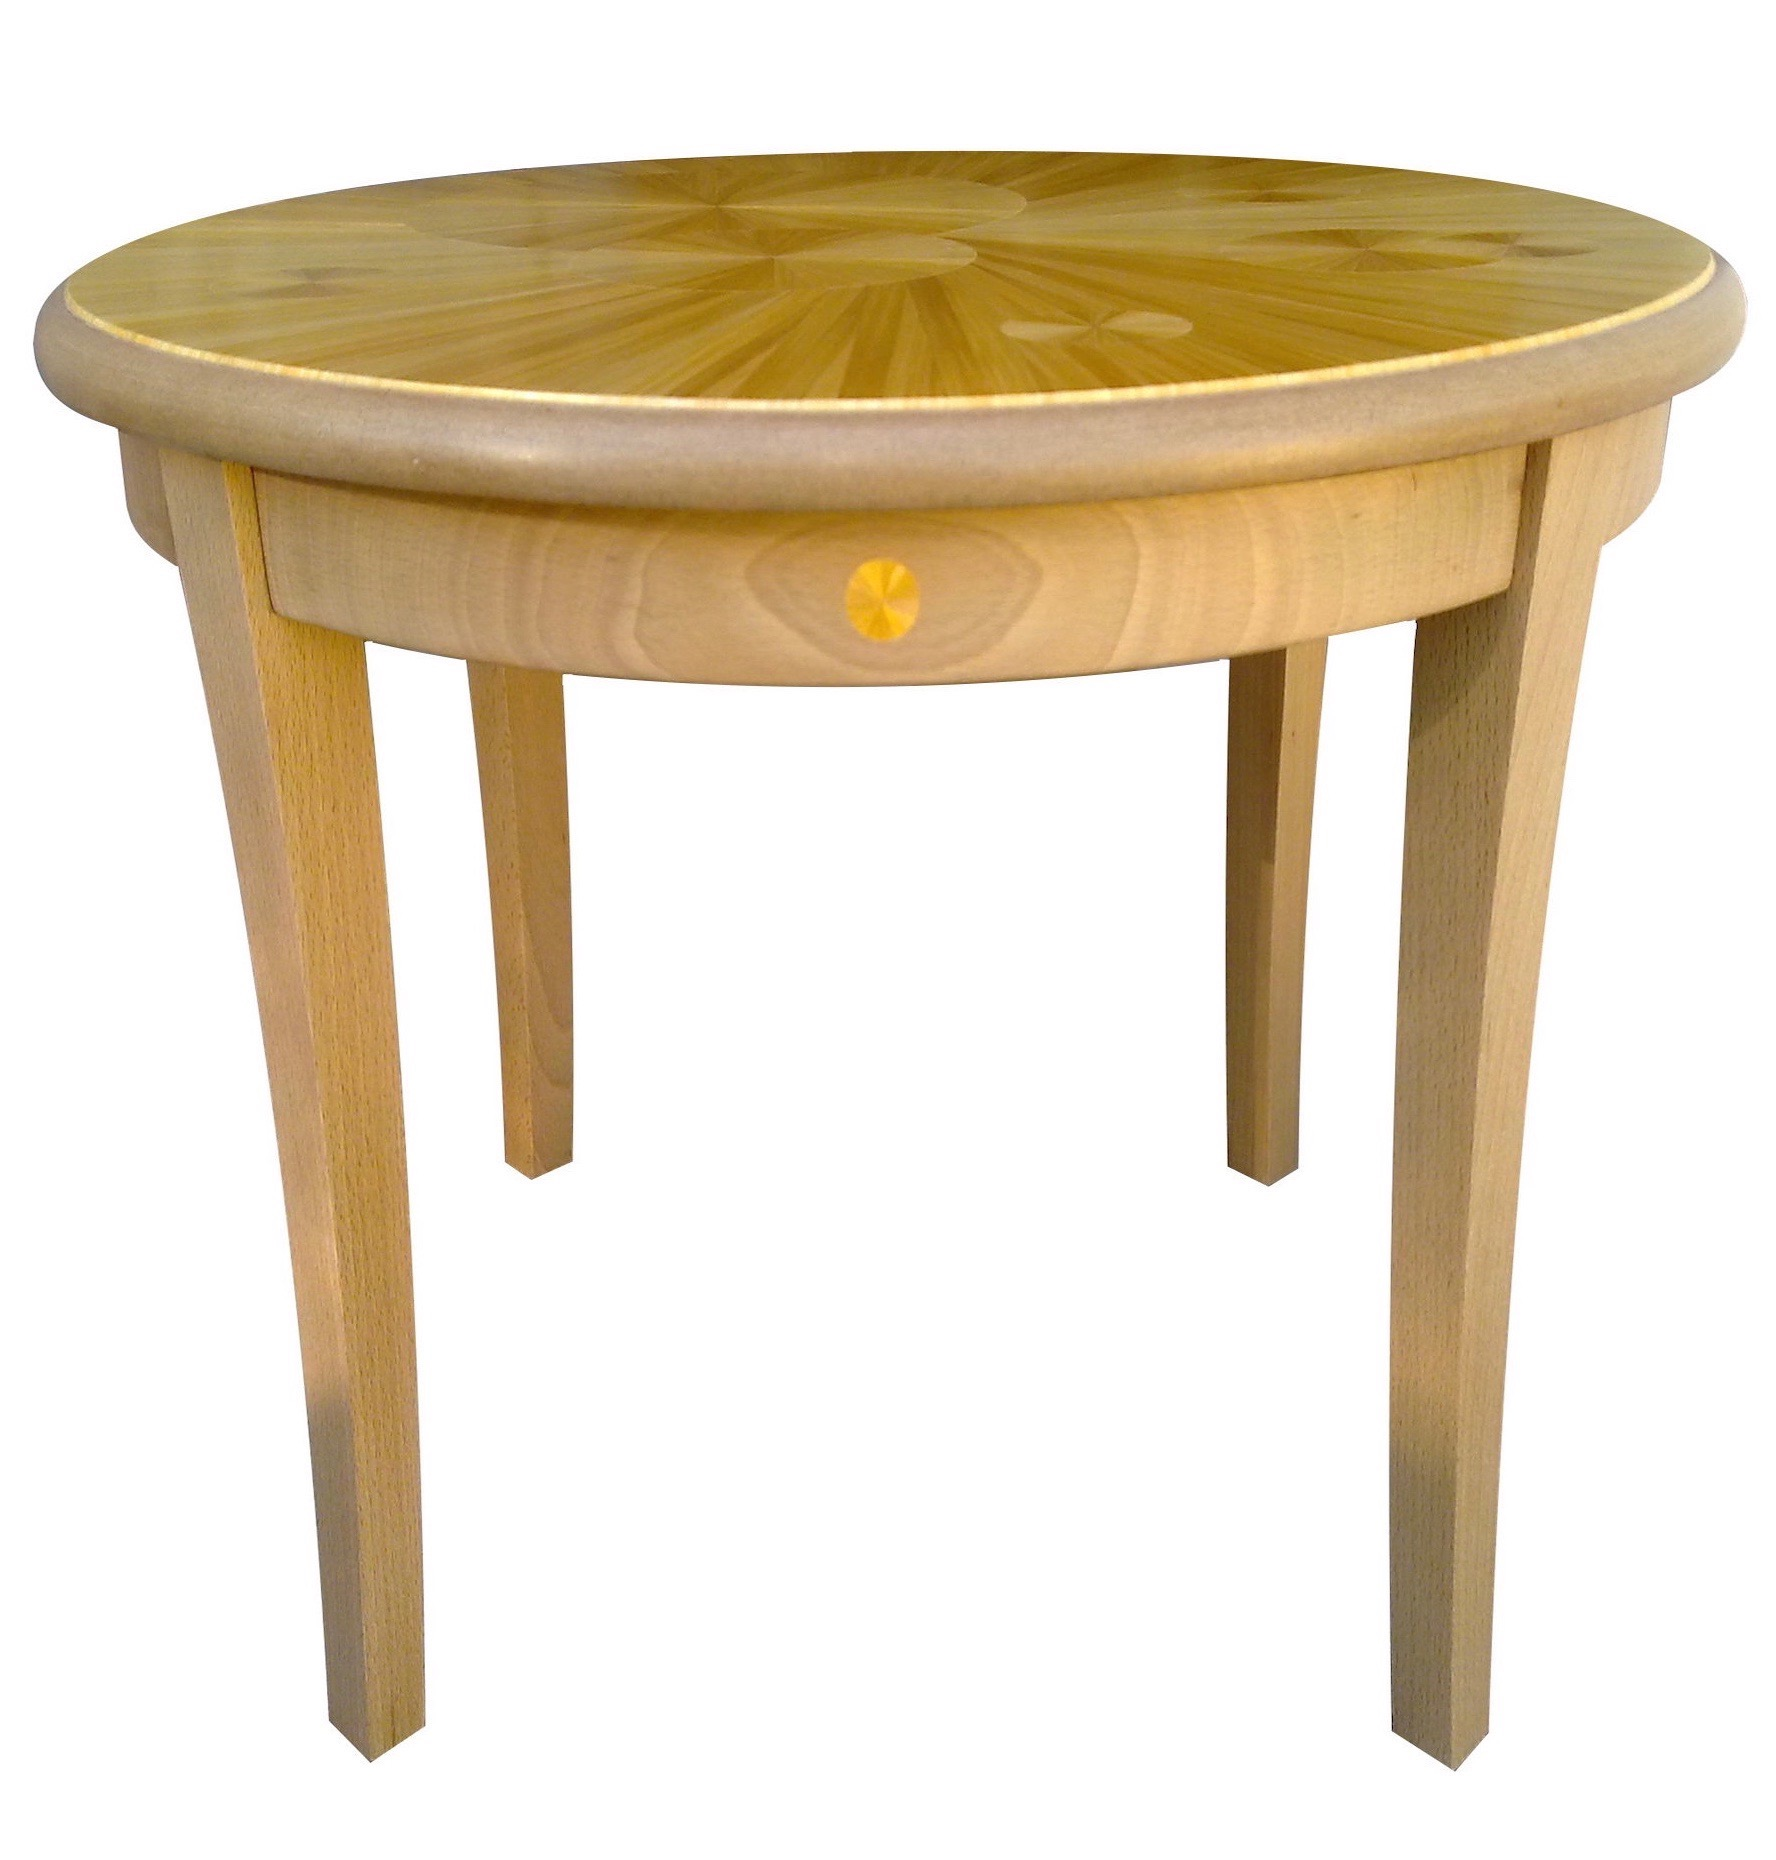 Table soleil